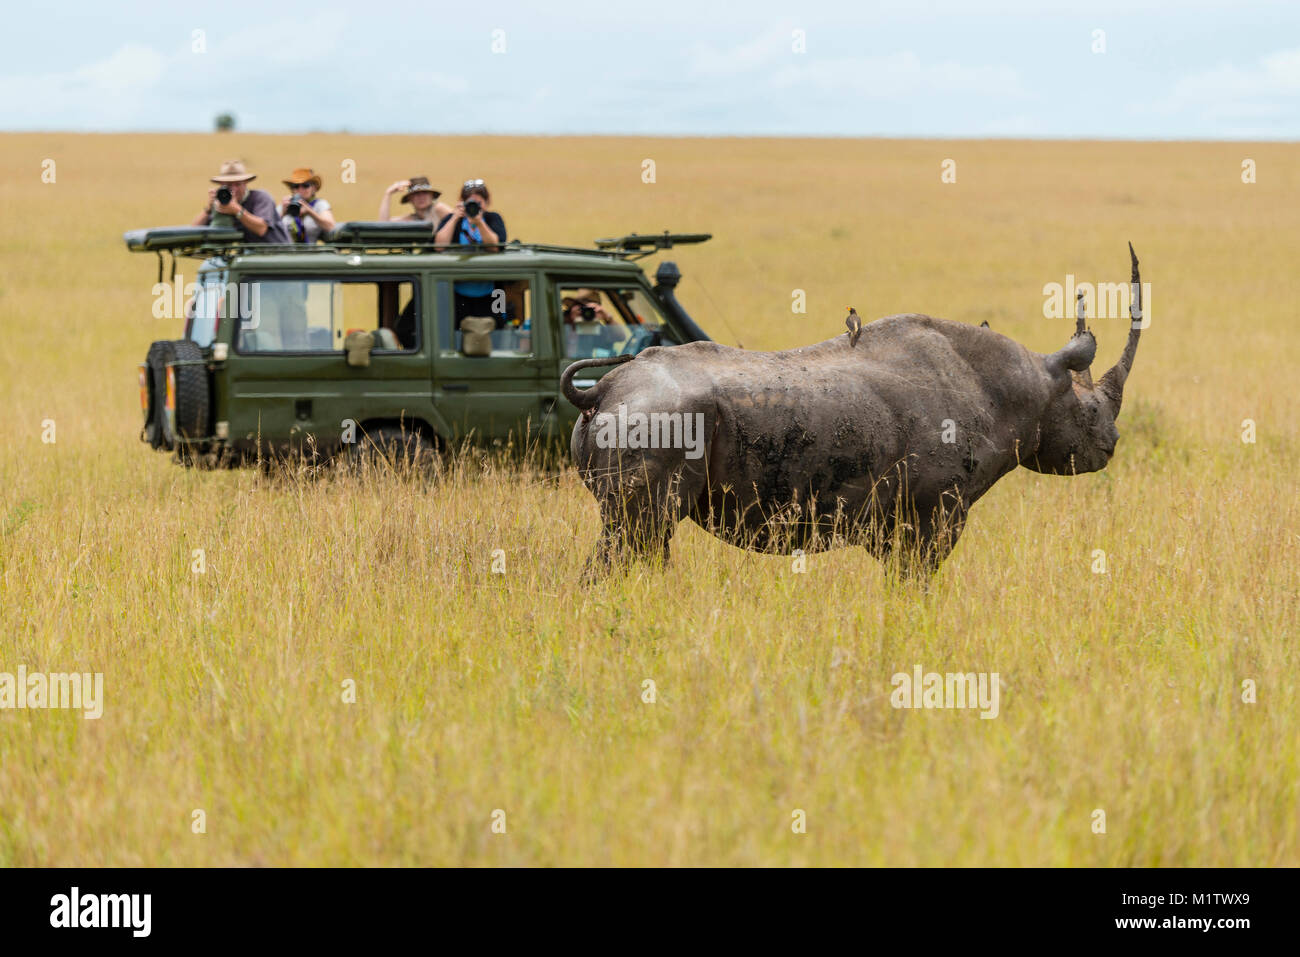 East African sub-species of black rhino (Diceros bicornis michaeli) cautiously approaches a safari game drive vehicle - Stock Image